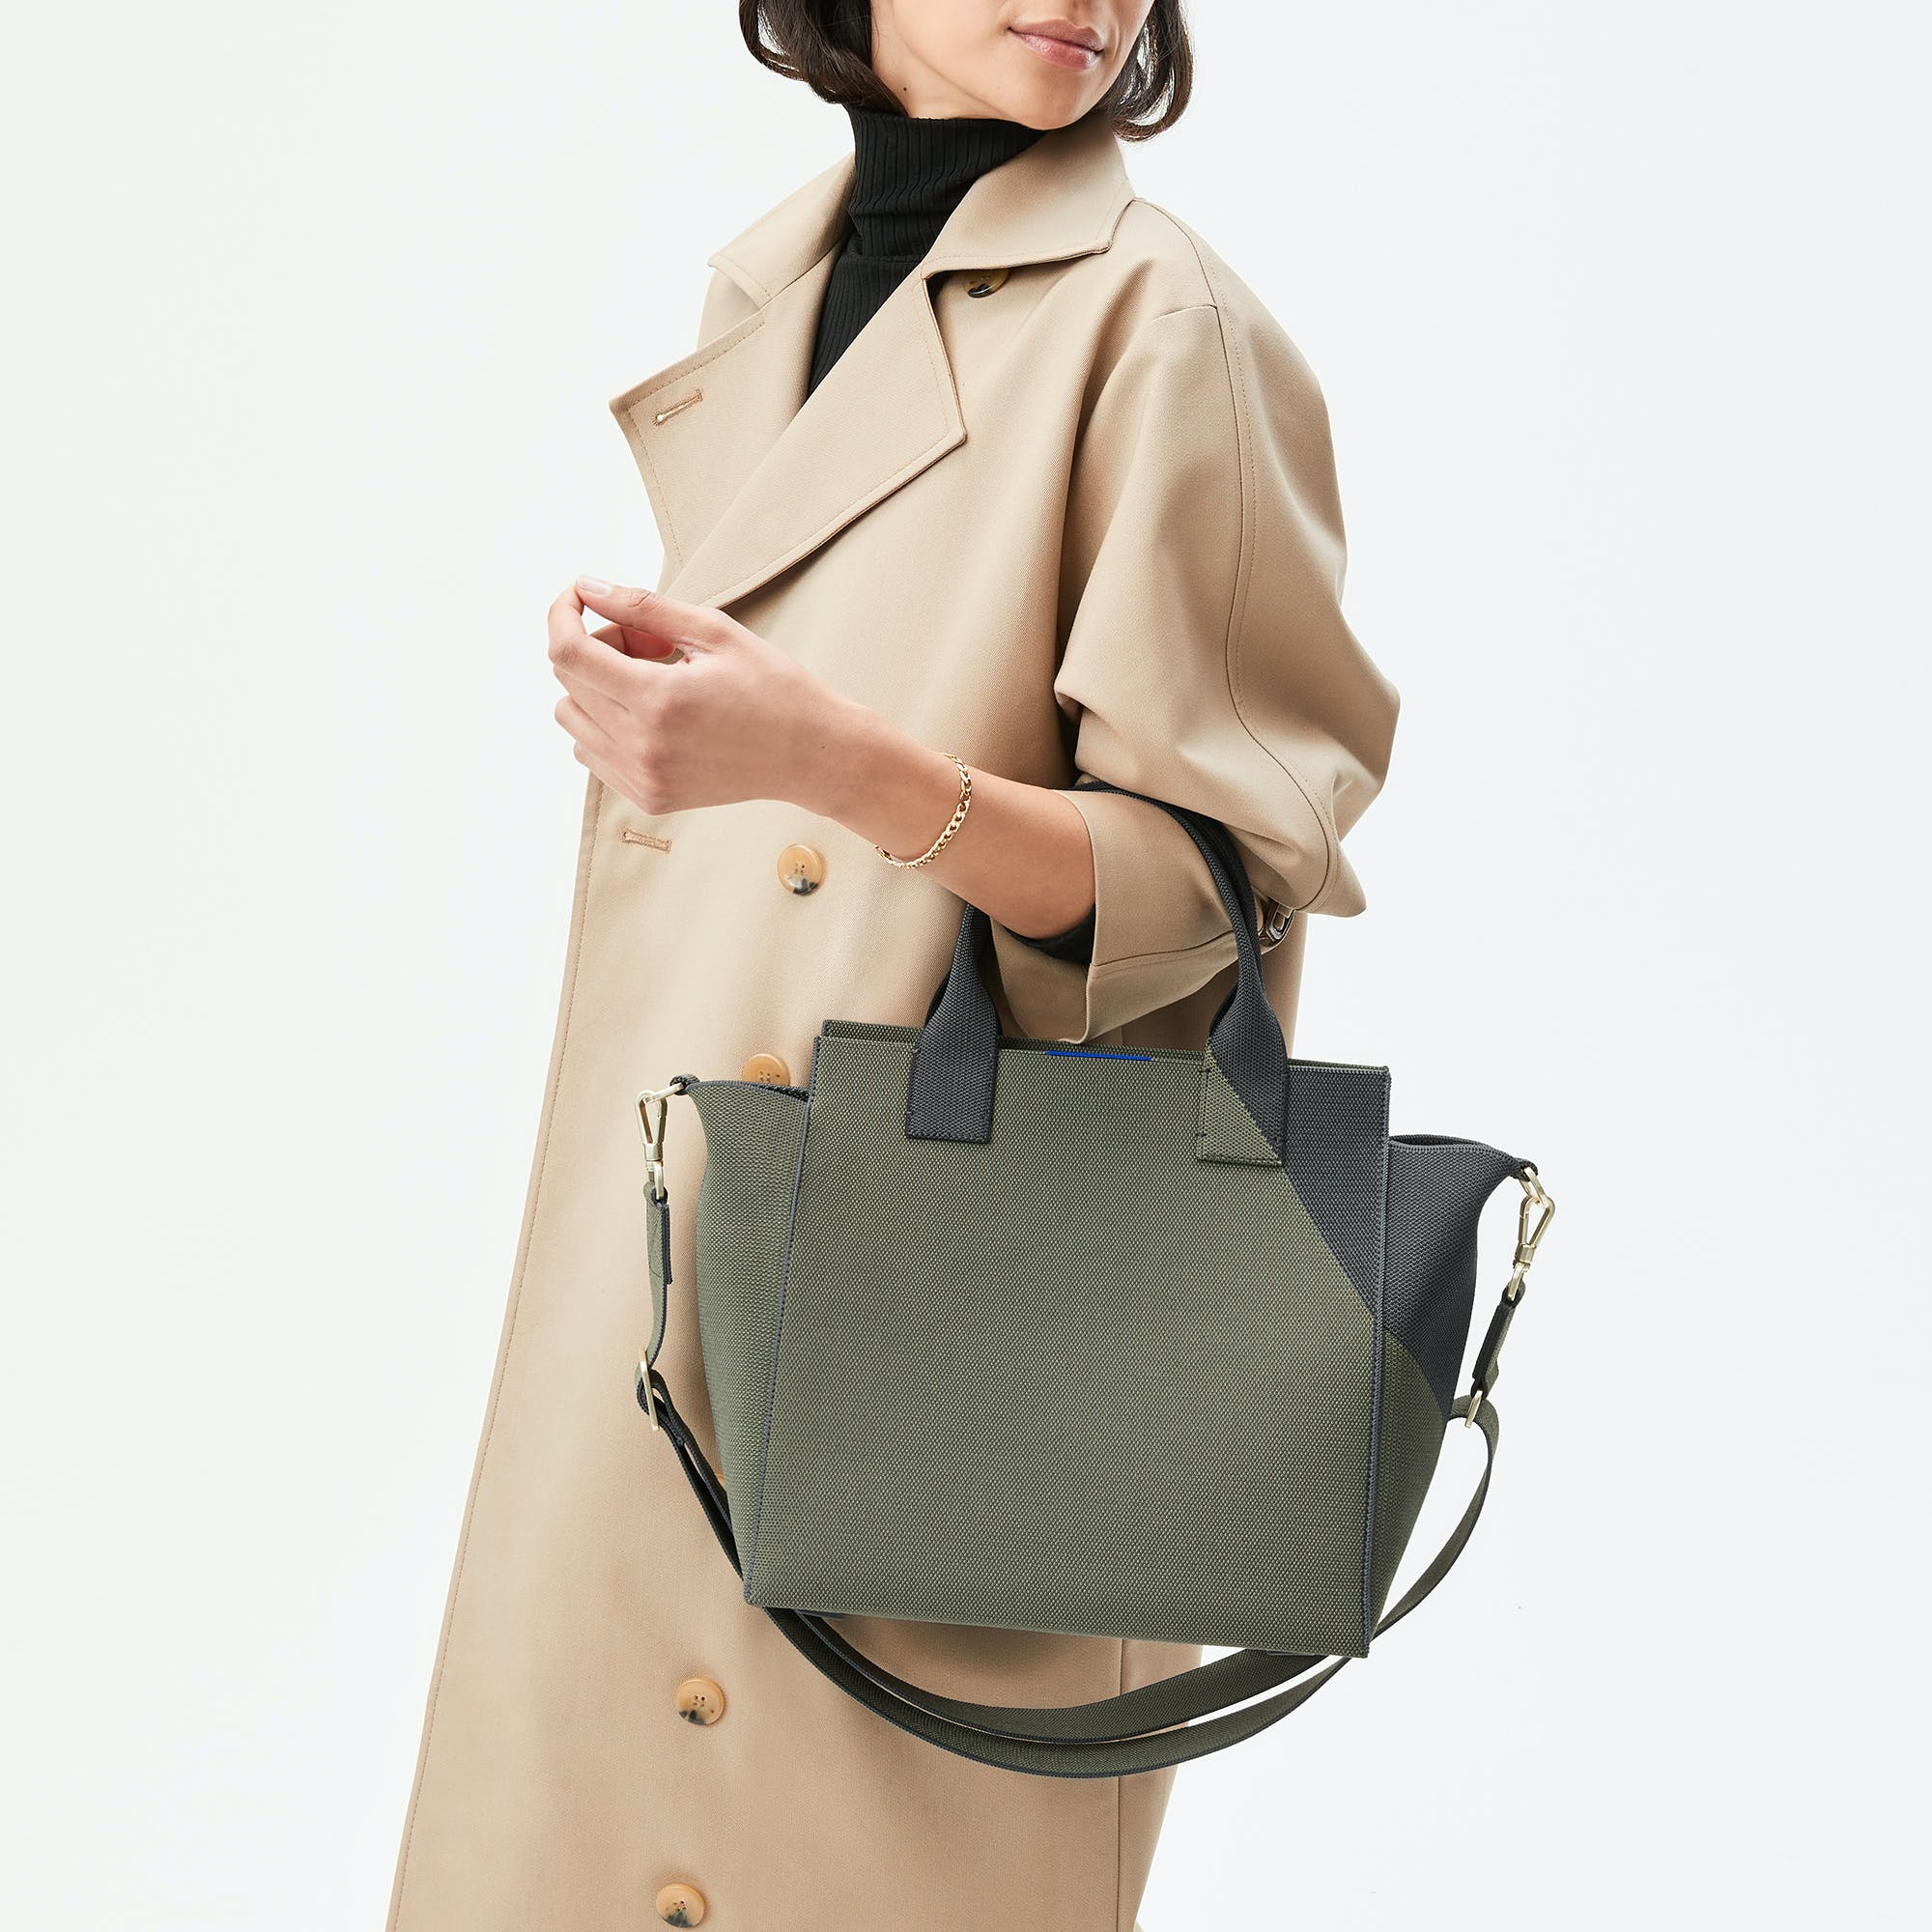 The Handbag in Sage Green shown from the front.